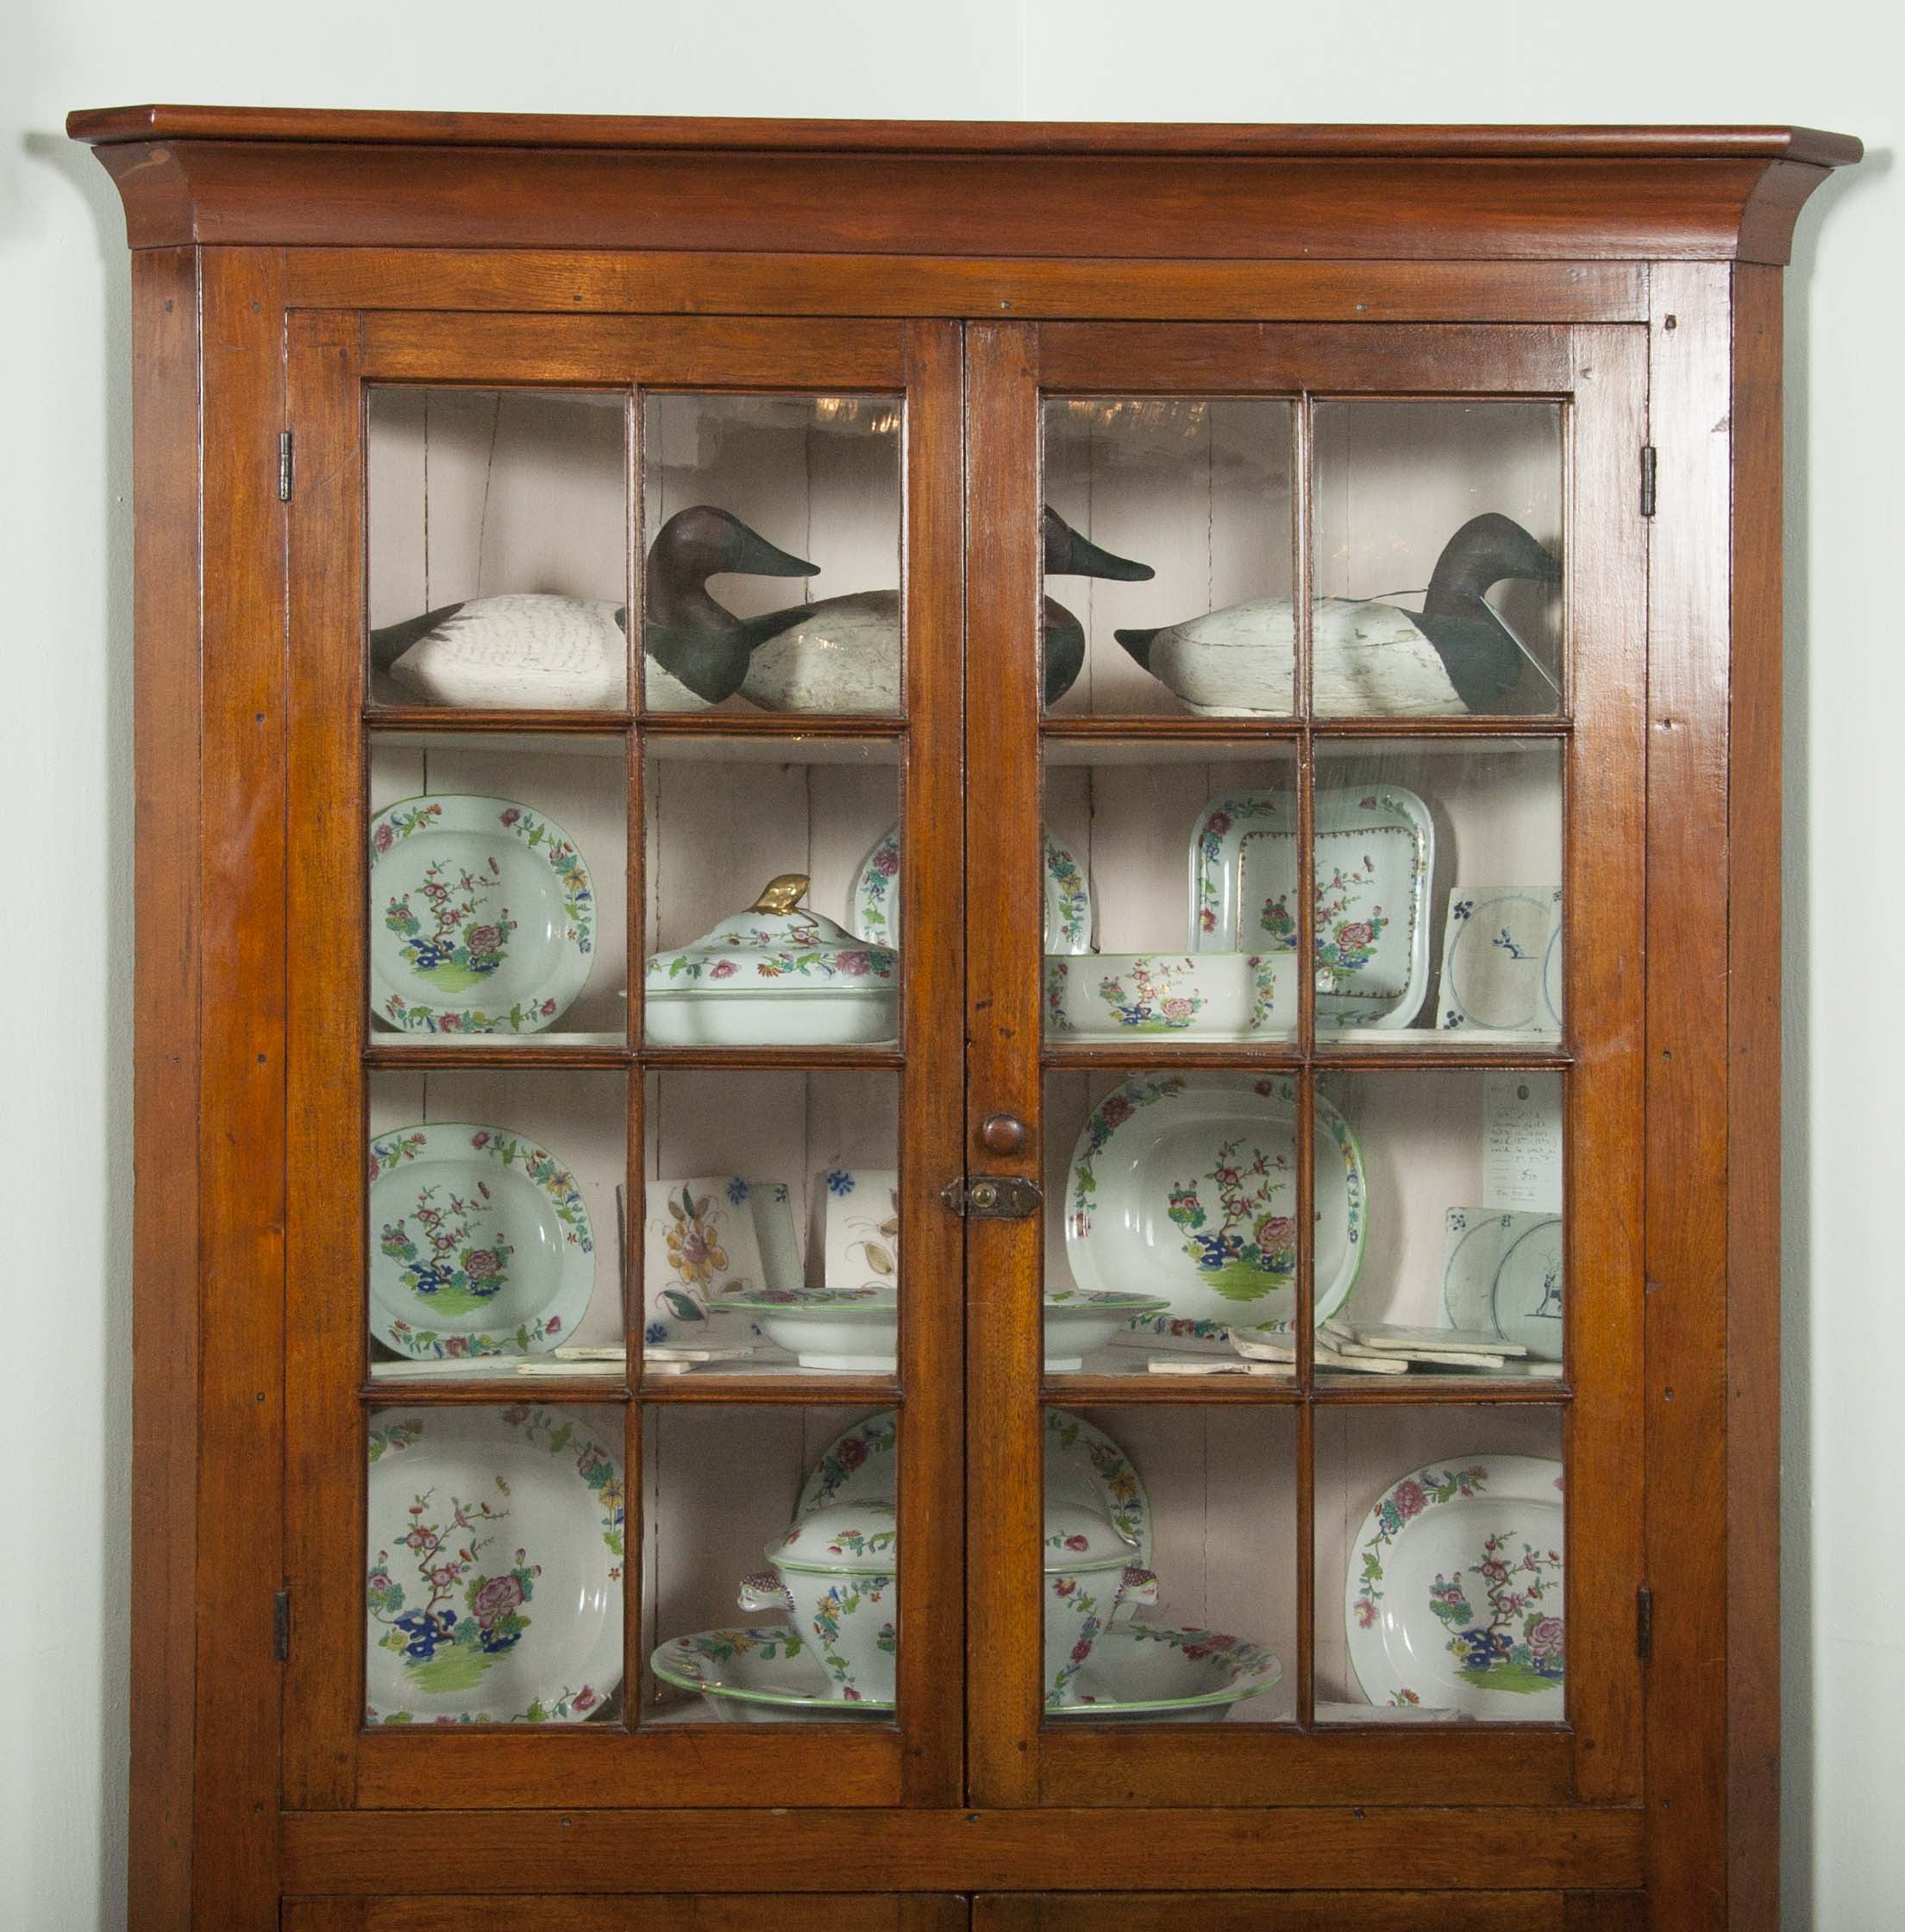 Late 18th / Early 19th Century Pennsylvania Corner Cupboard